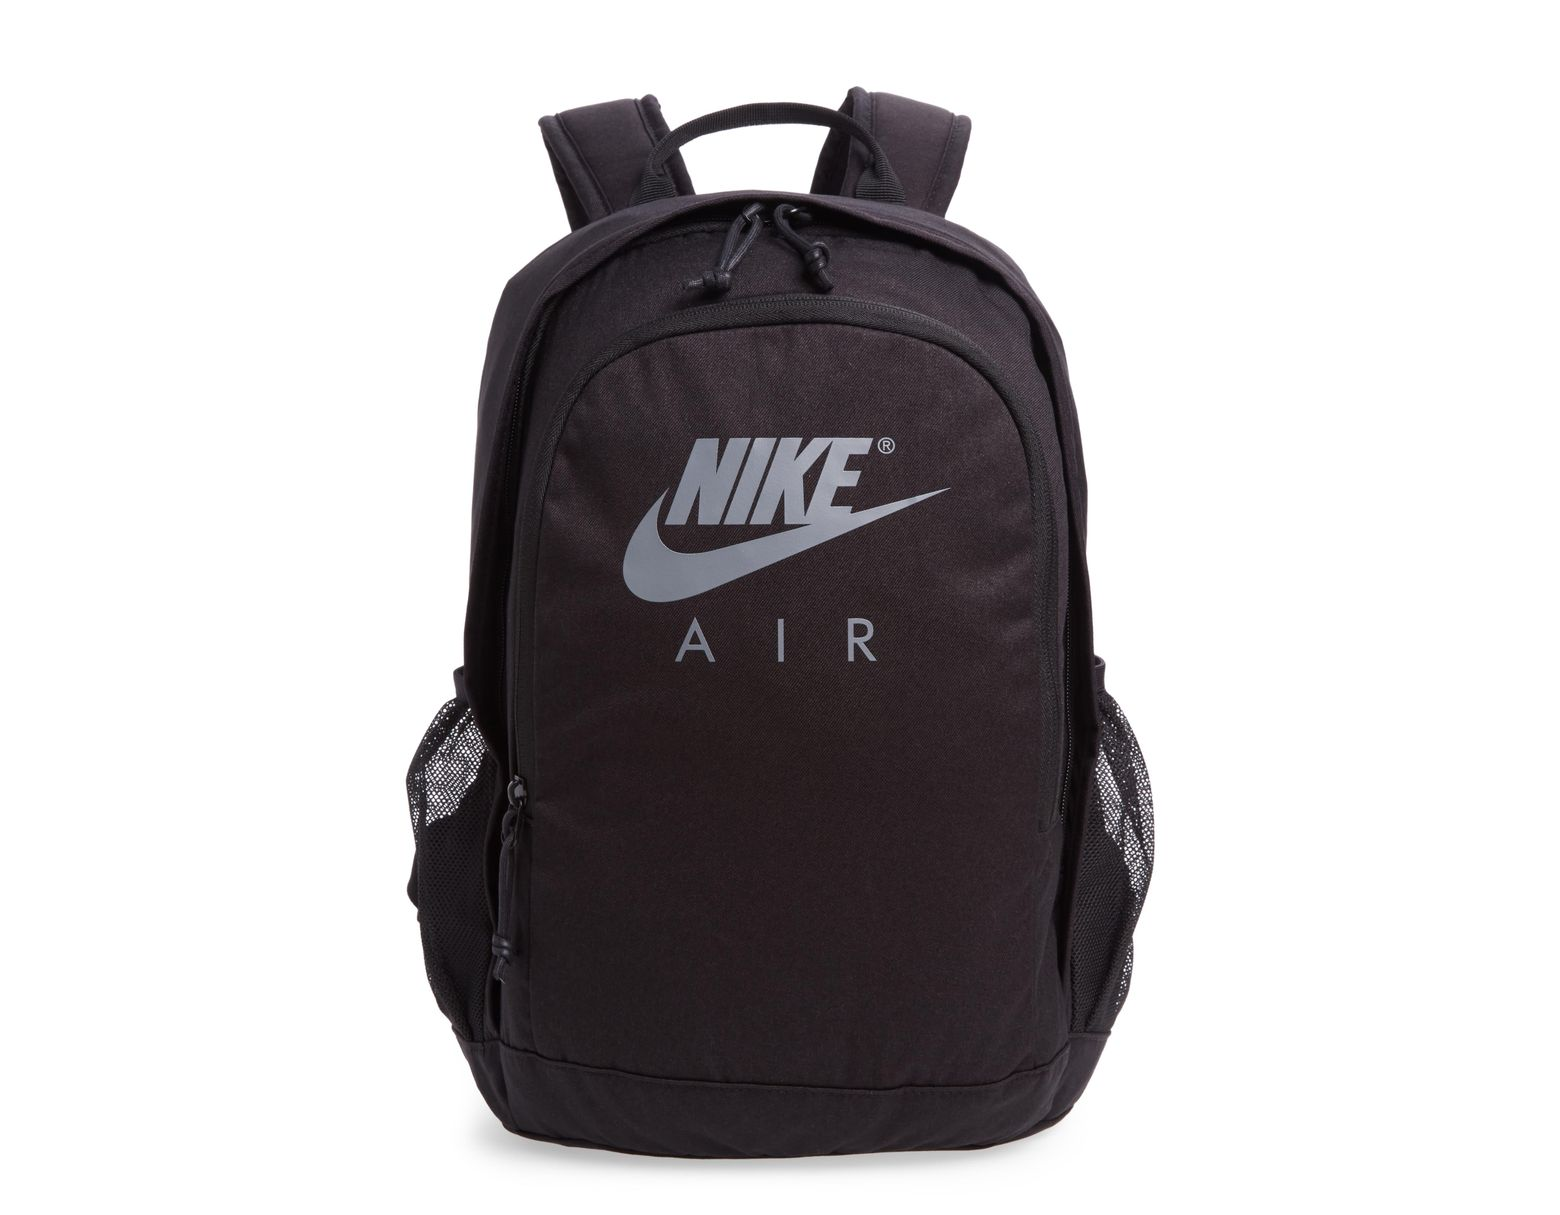 76e386c67b0 Nike Hayward Air Backpack in Black for Men - Save 51% - Lyst